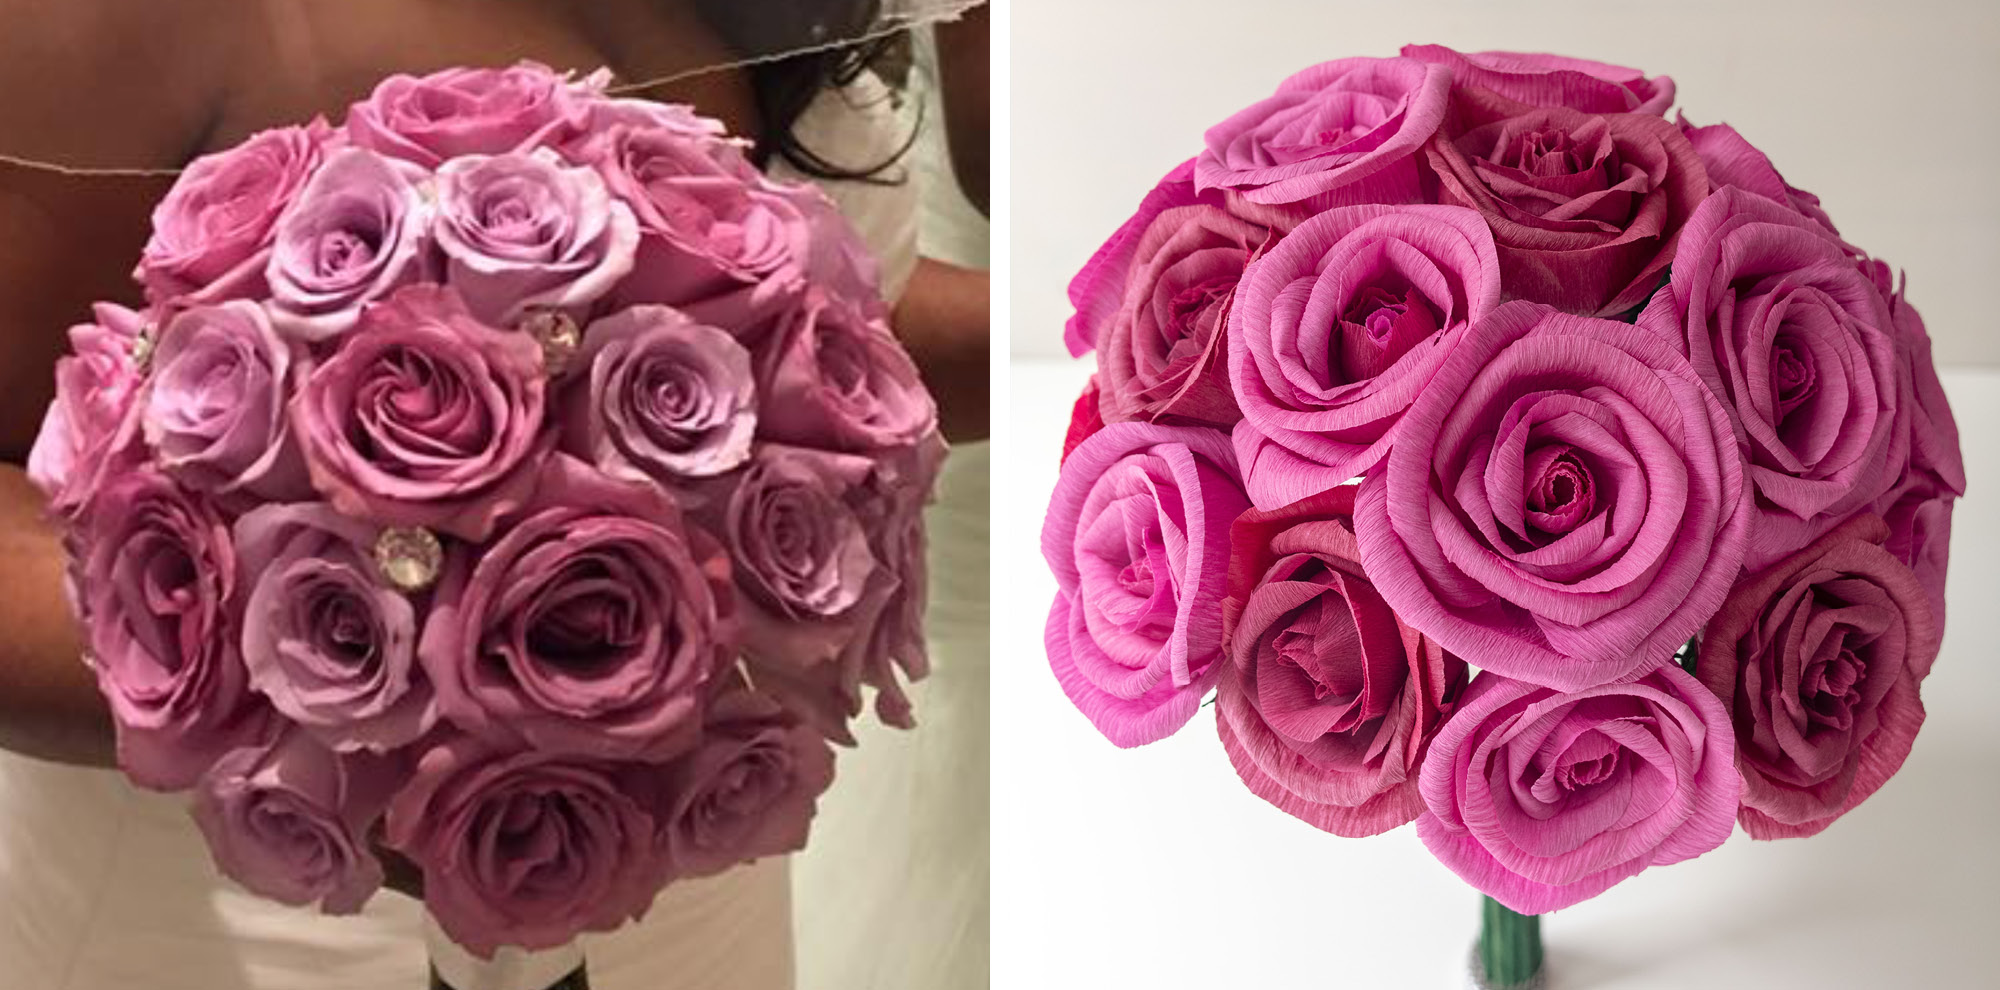 PaperRoseCo Wedding Bouquet Replica Comparison